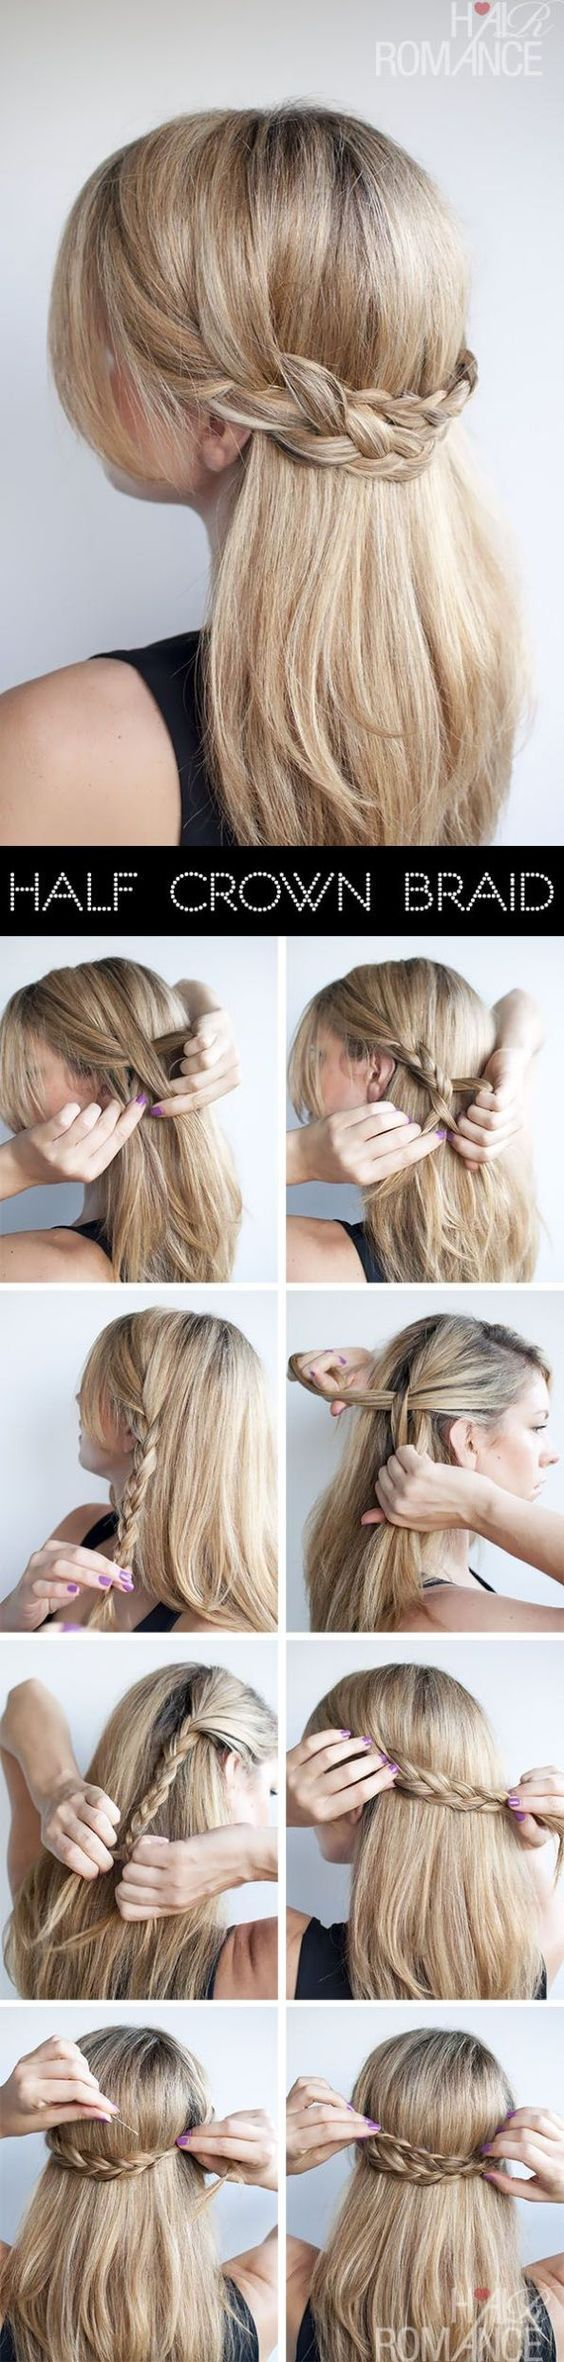 half crown braid // In need of a detox? 10% off using our discount code 'Pin10' at www.ThinTea.com.au: